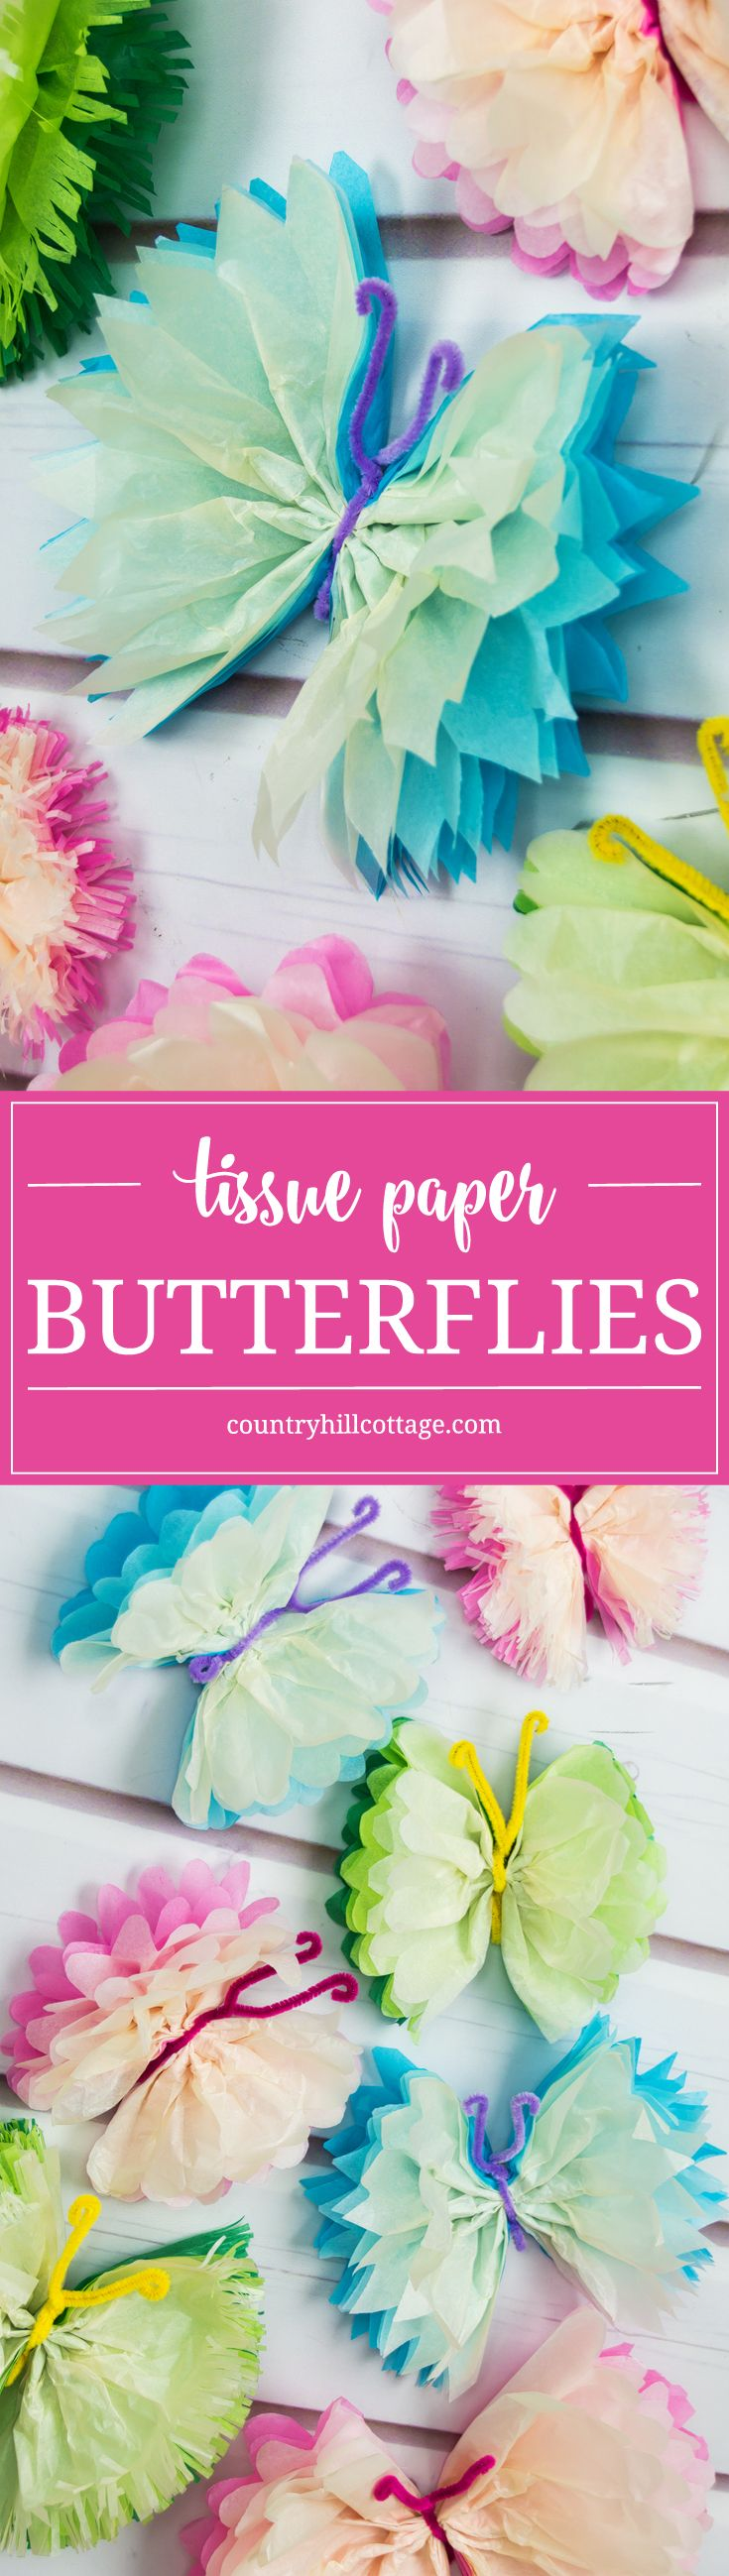 Frilly tissue paper butterflies are a beautiful decoration for parties and weddings! In this paper craft DIY, we show an easy technique to create colourful and elegant butterflies using tissue paper and pipe cleaner. #papercrafts #DIY #decor | countryhillcottage.com